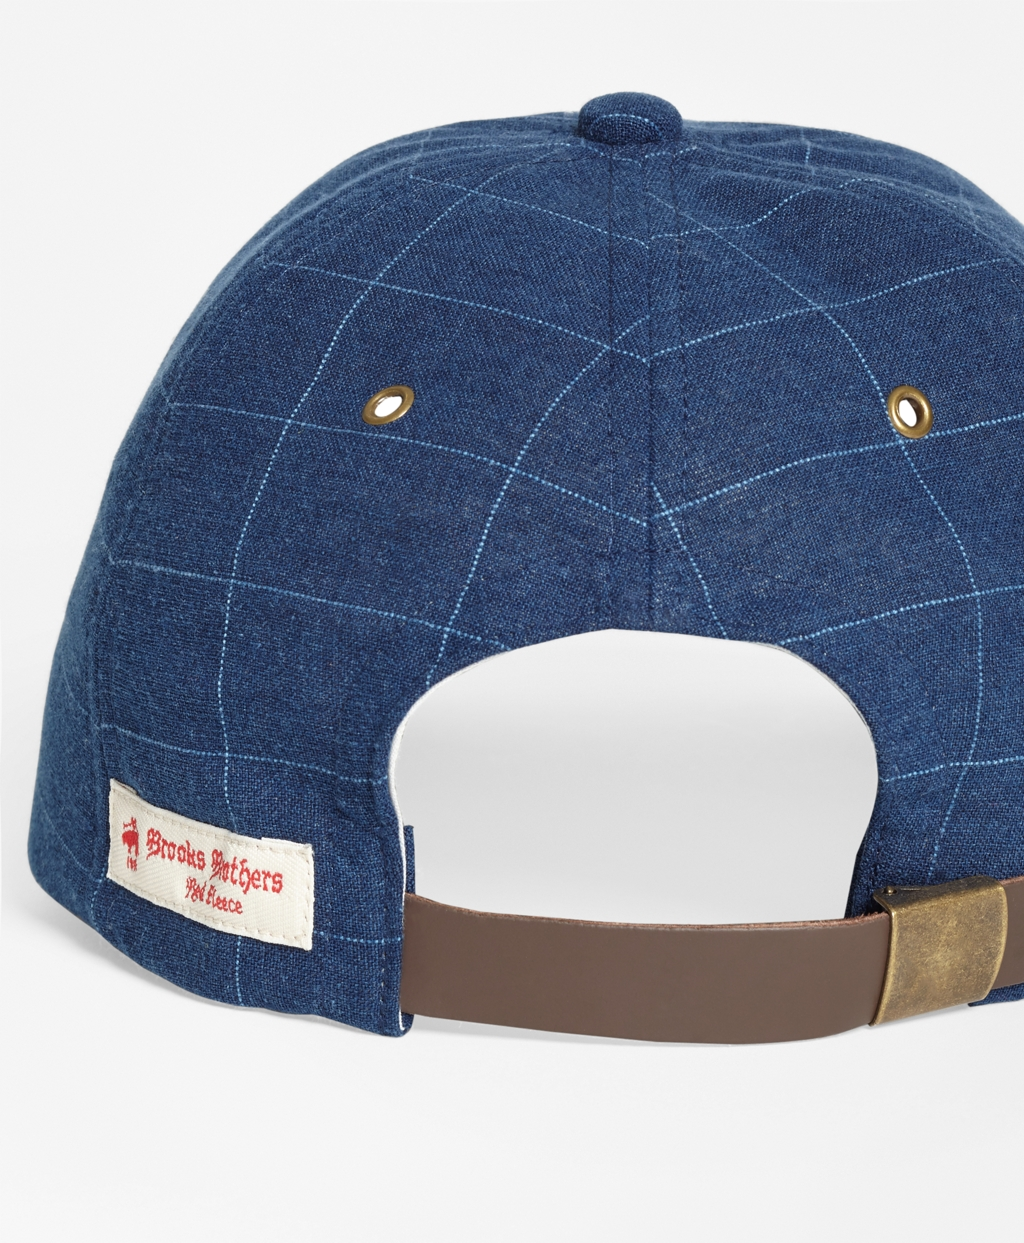 e5d142fbf7e7f Windowpane Denim Baseball Cap - BB AU Ecommerce